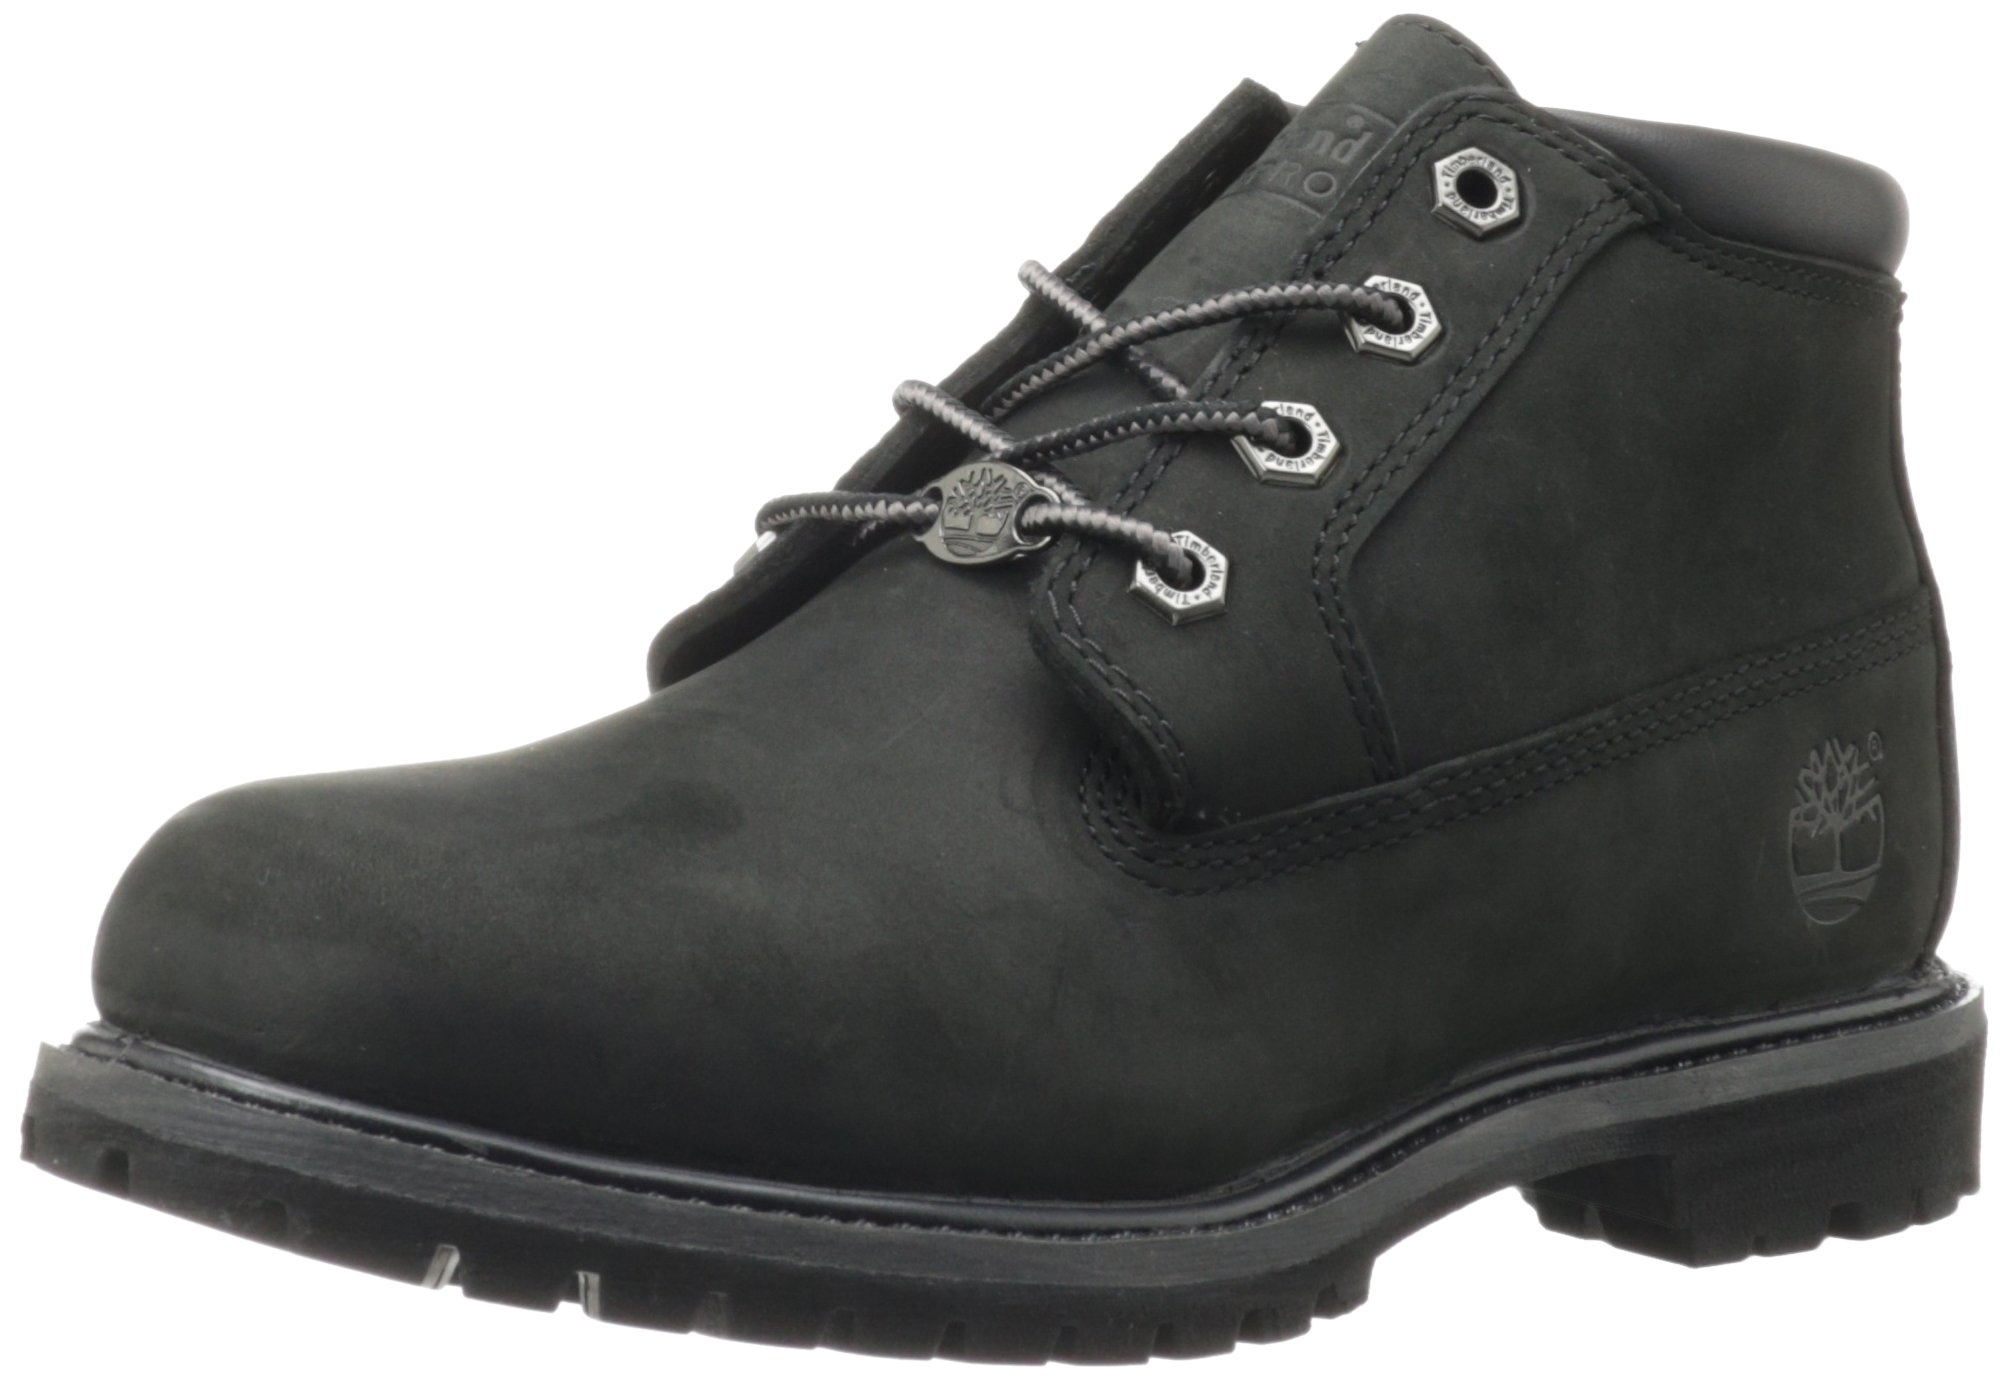 Timberland Women's Nellie Double WP Ankle Boot,Black,8.5 M US by Timberland